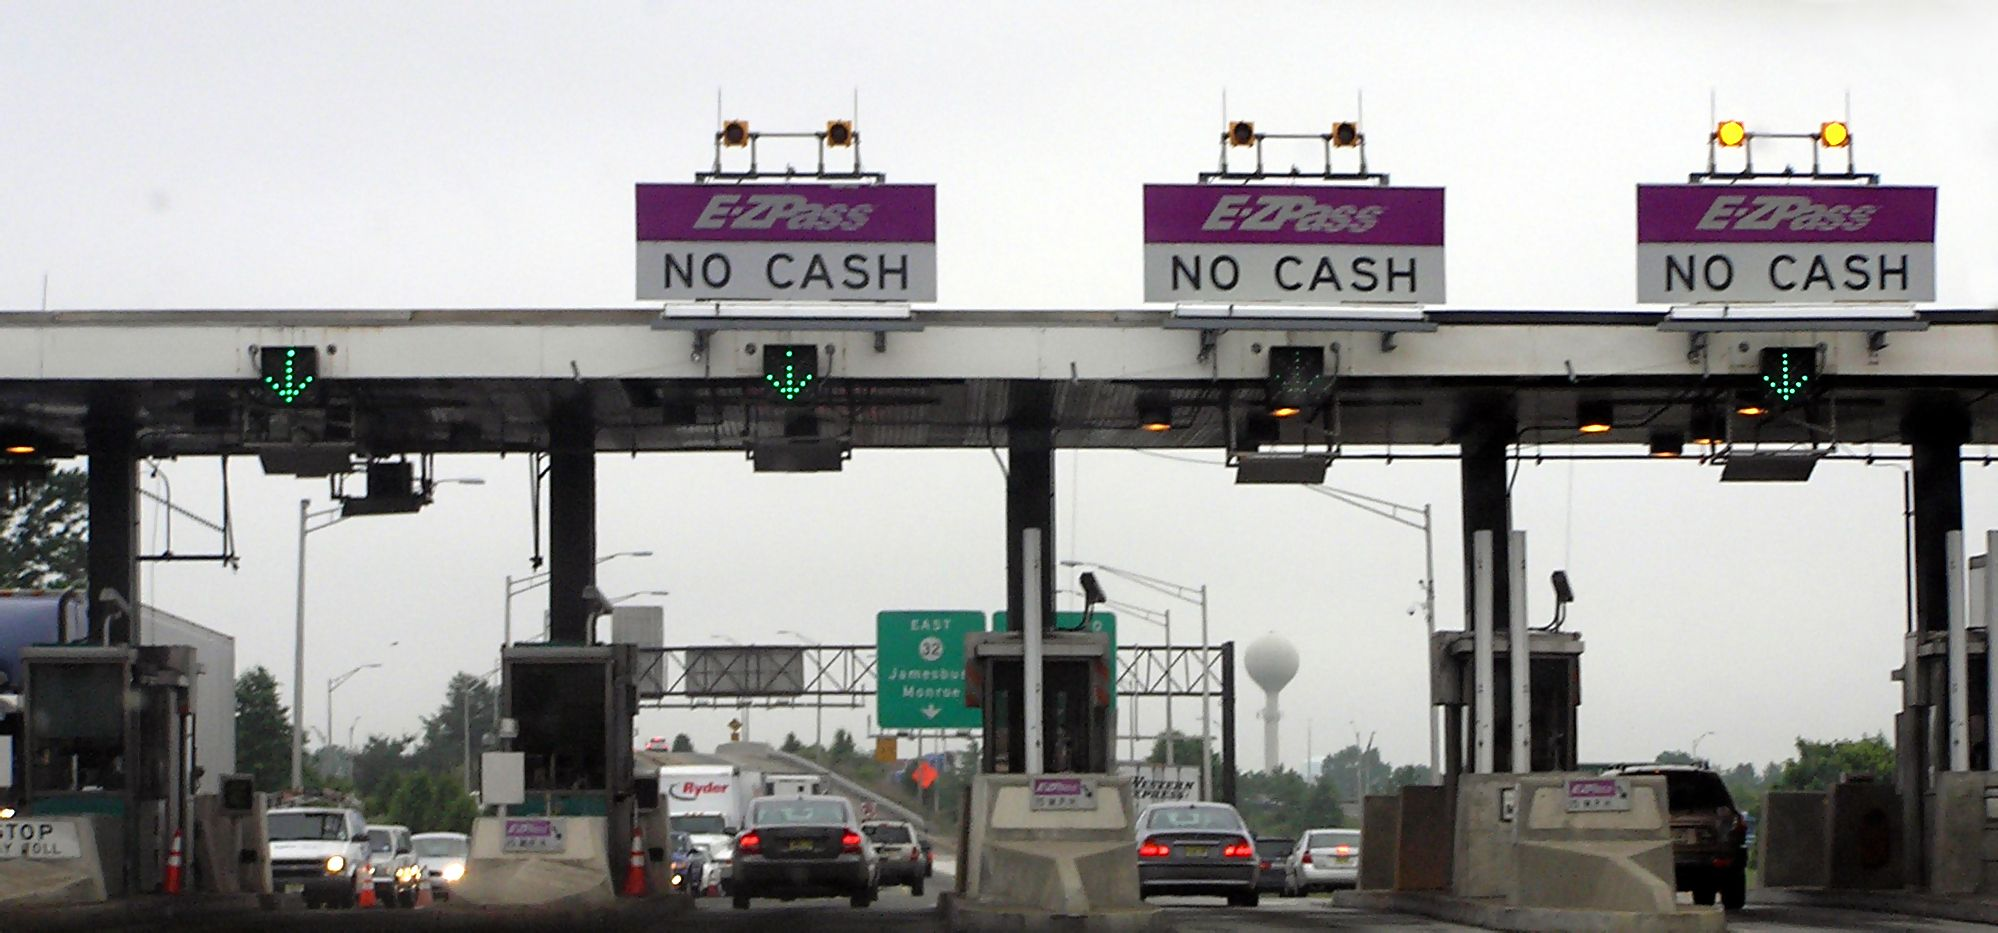 how to pay queensland tolls